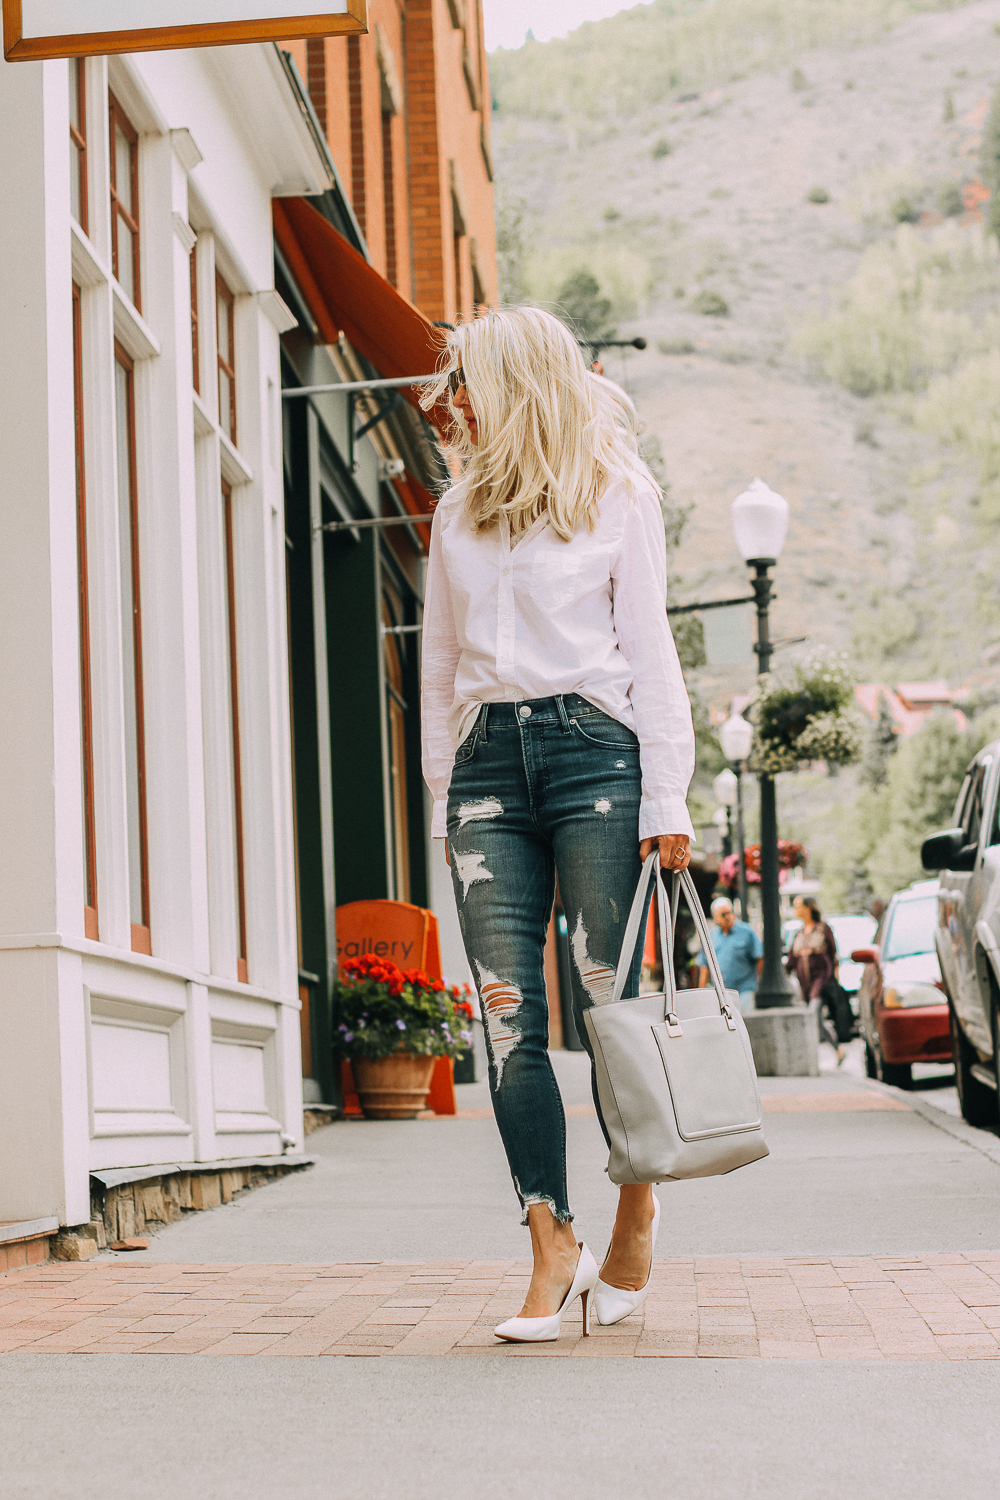 Pumps by Vince Camuto very comfortable paired with Express distressed skinny jeans and a Frank & Eileen white button down shirt and gray Vince Camuto tote bag